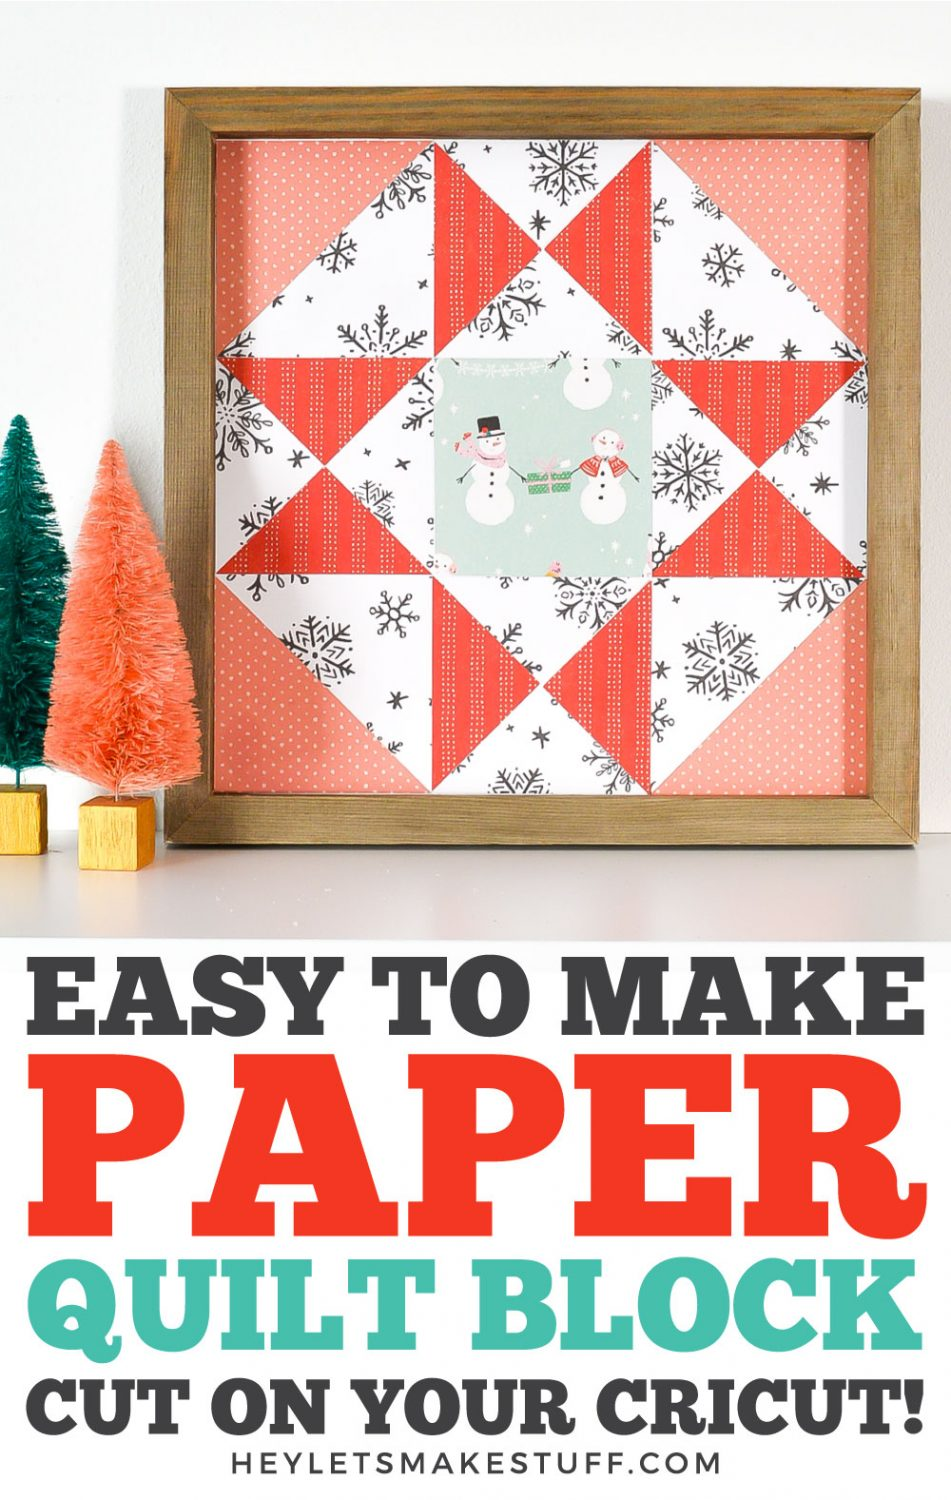 Pin image for Easy To Make Paper Quilt Block Cut On Your Cricut